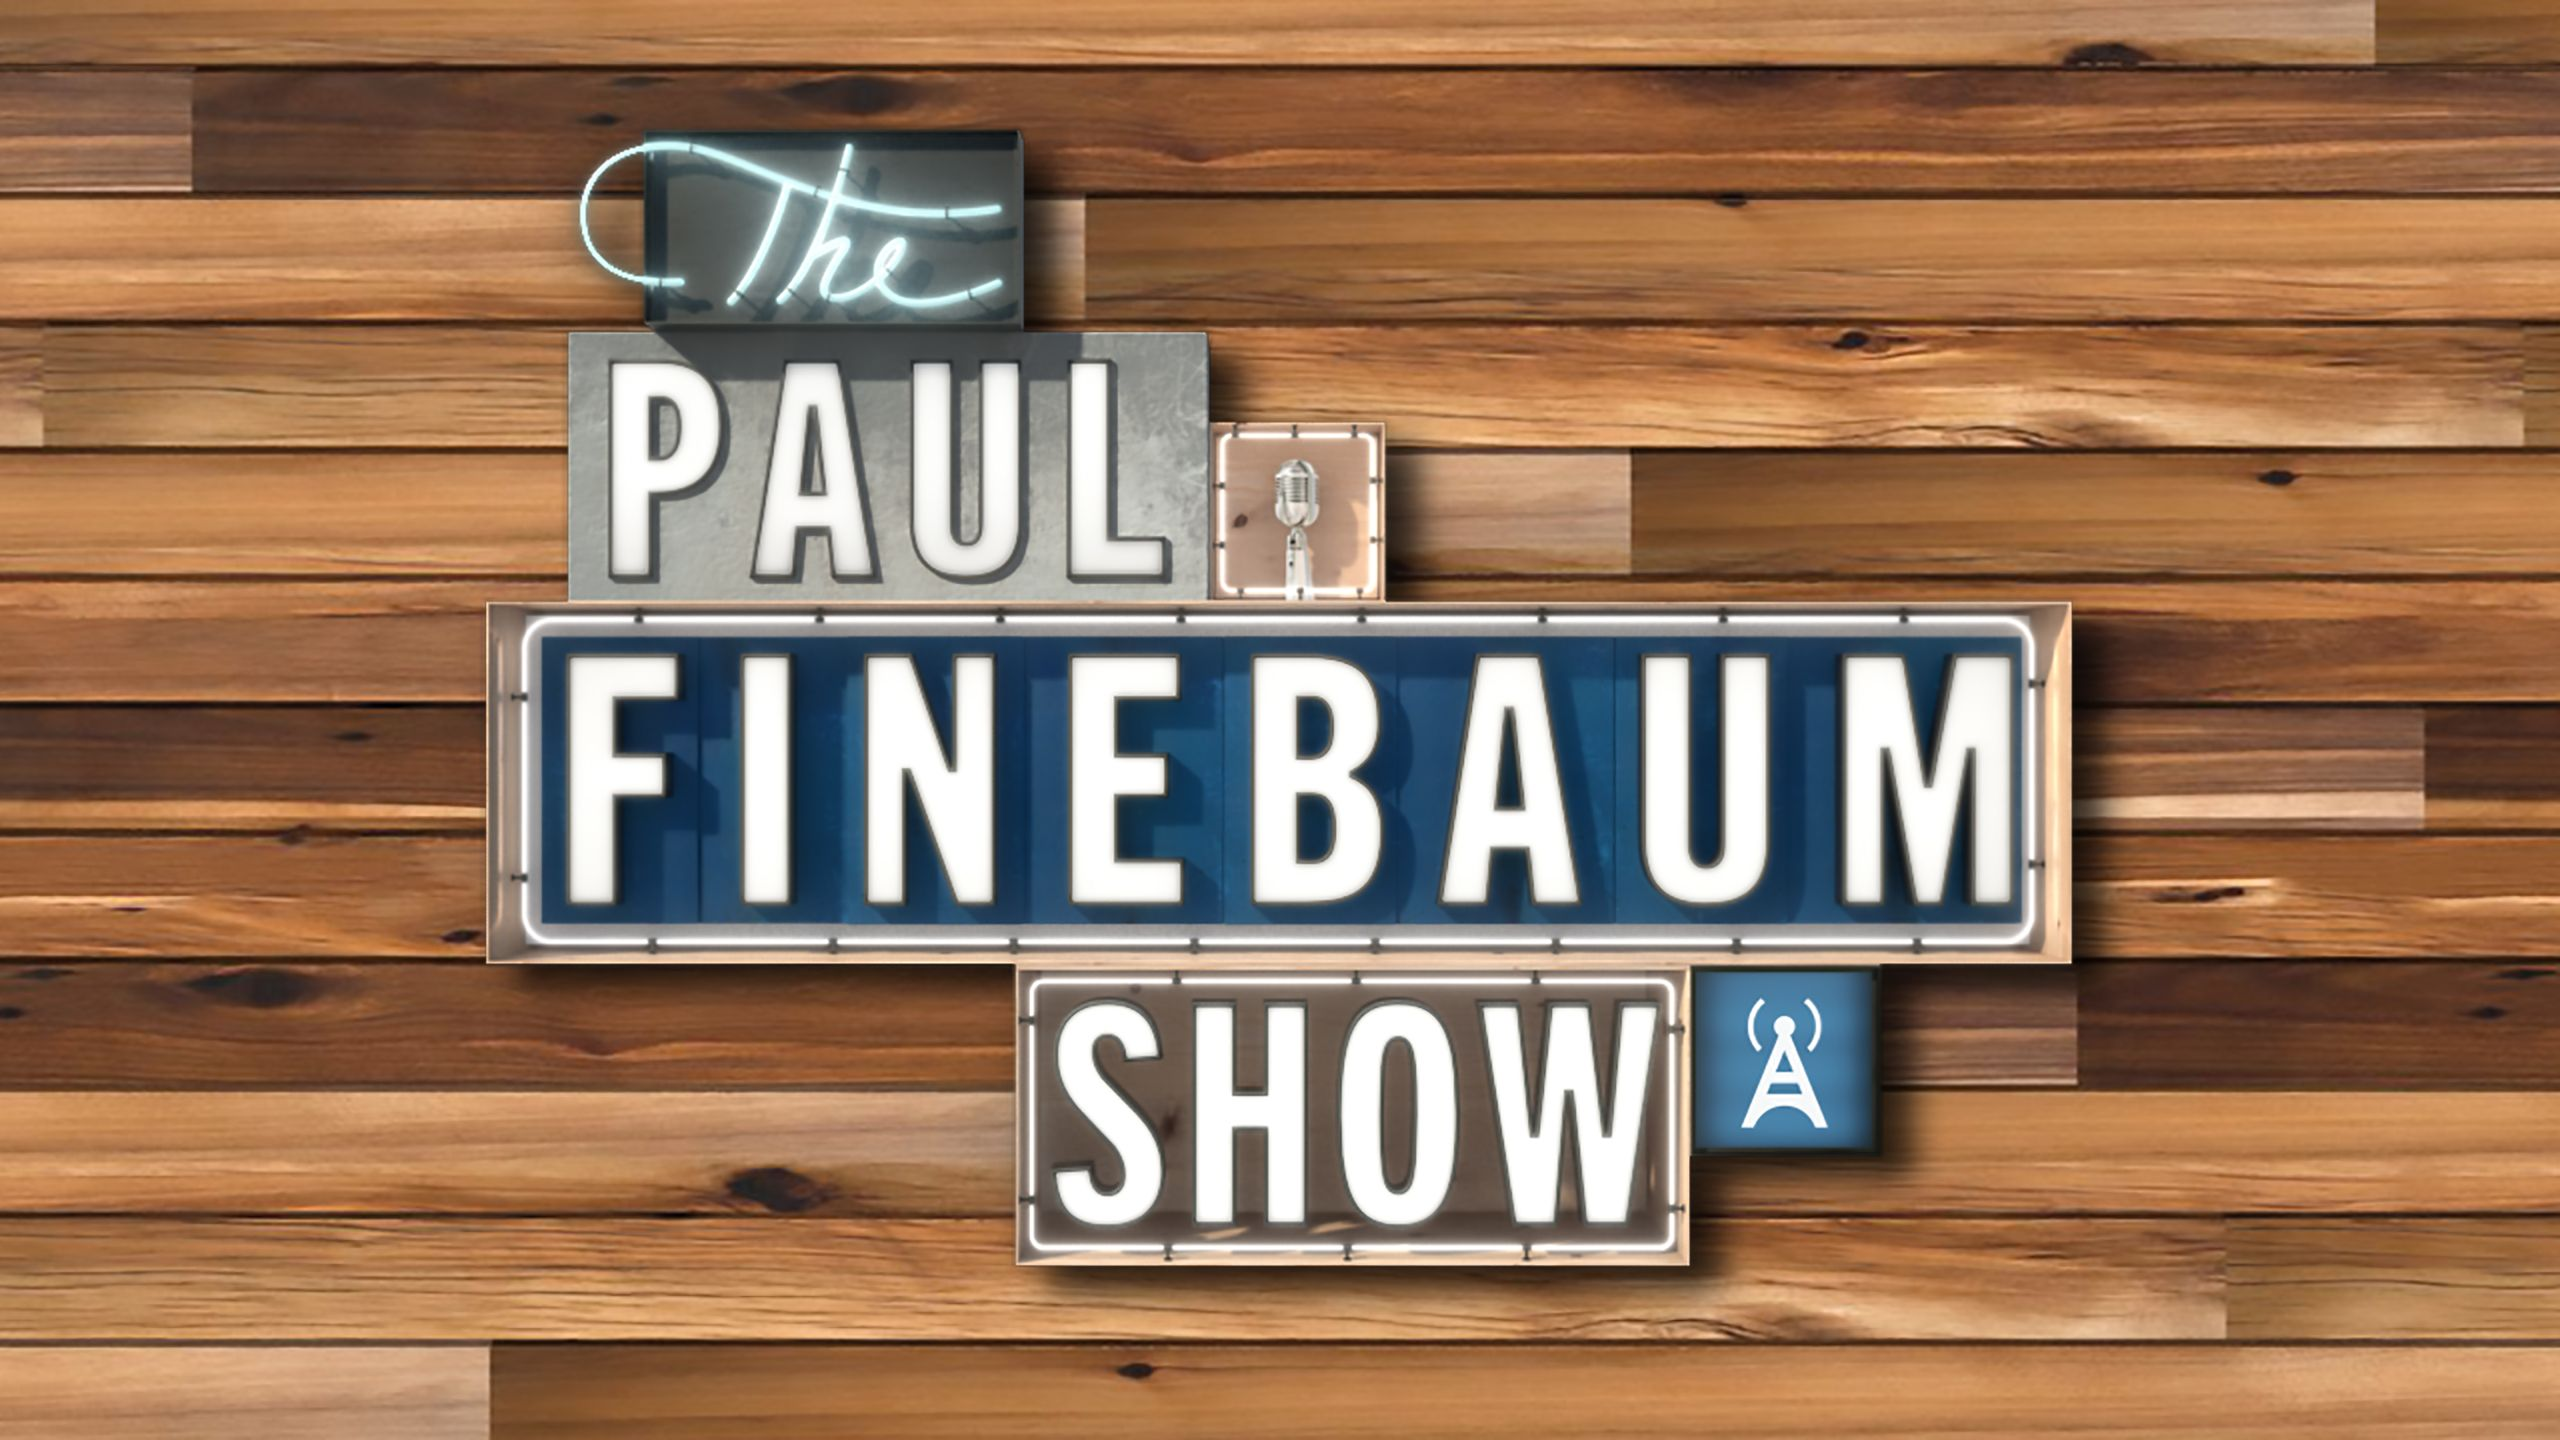 Thu, 6/21 - The Paul Finebaum Show